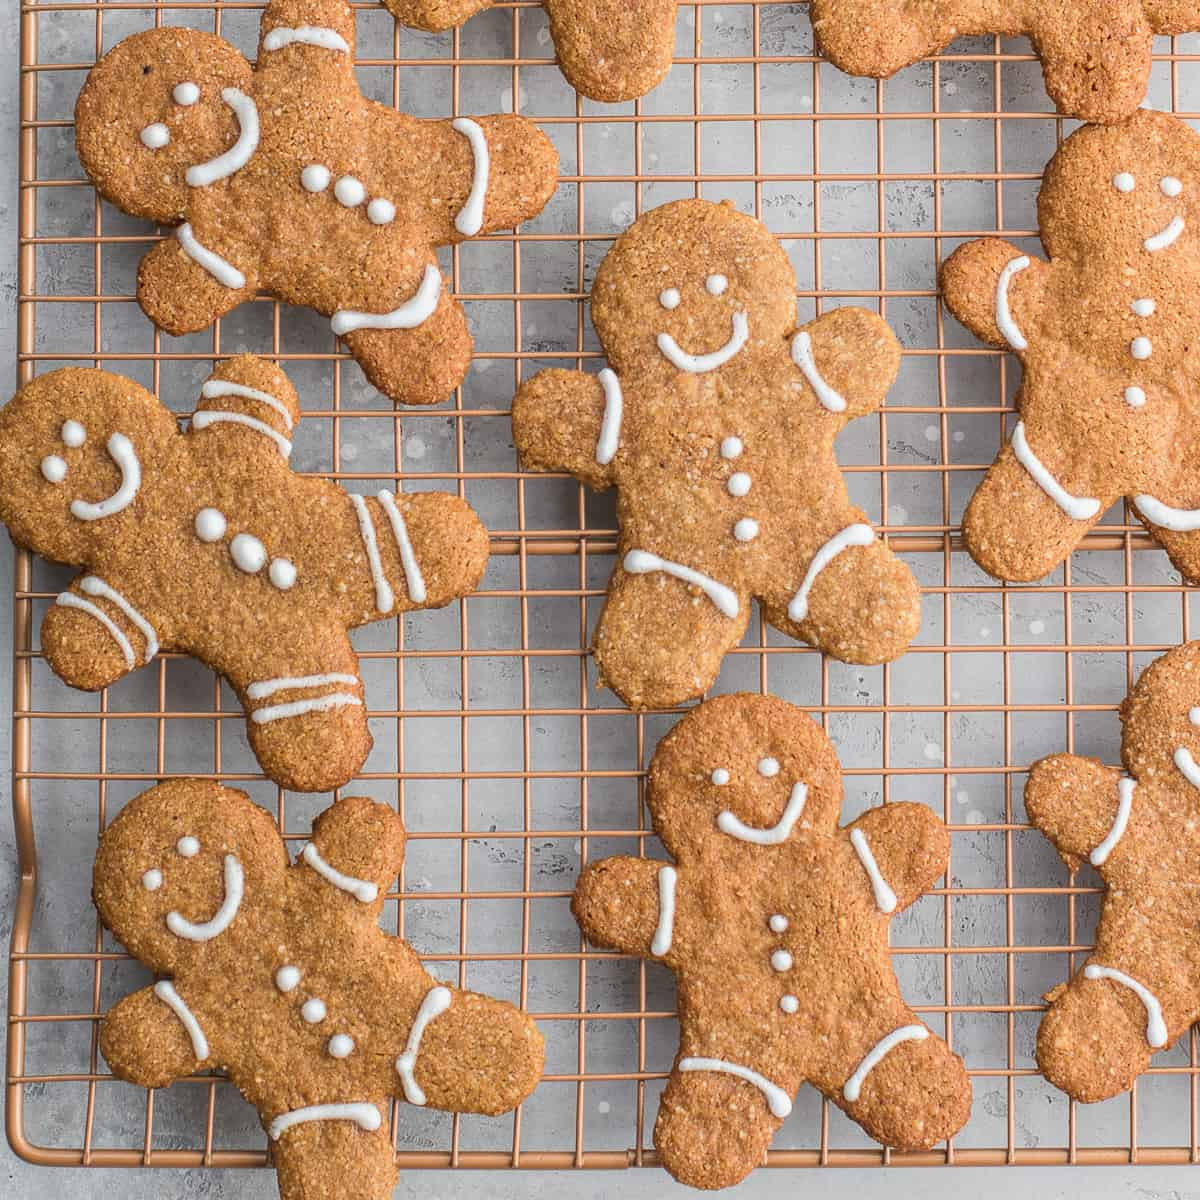 gluten-free Gingerbread Men Cookies